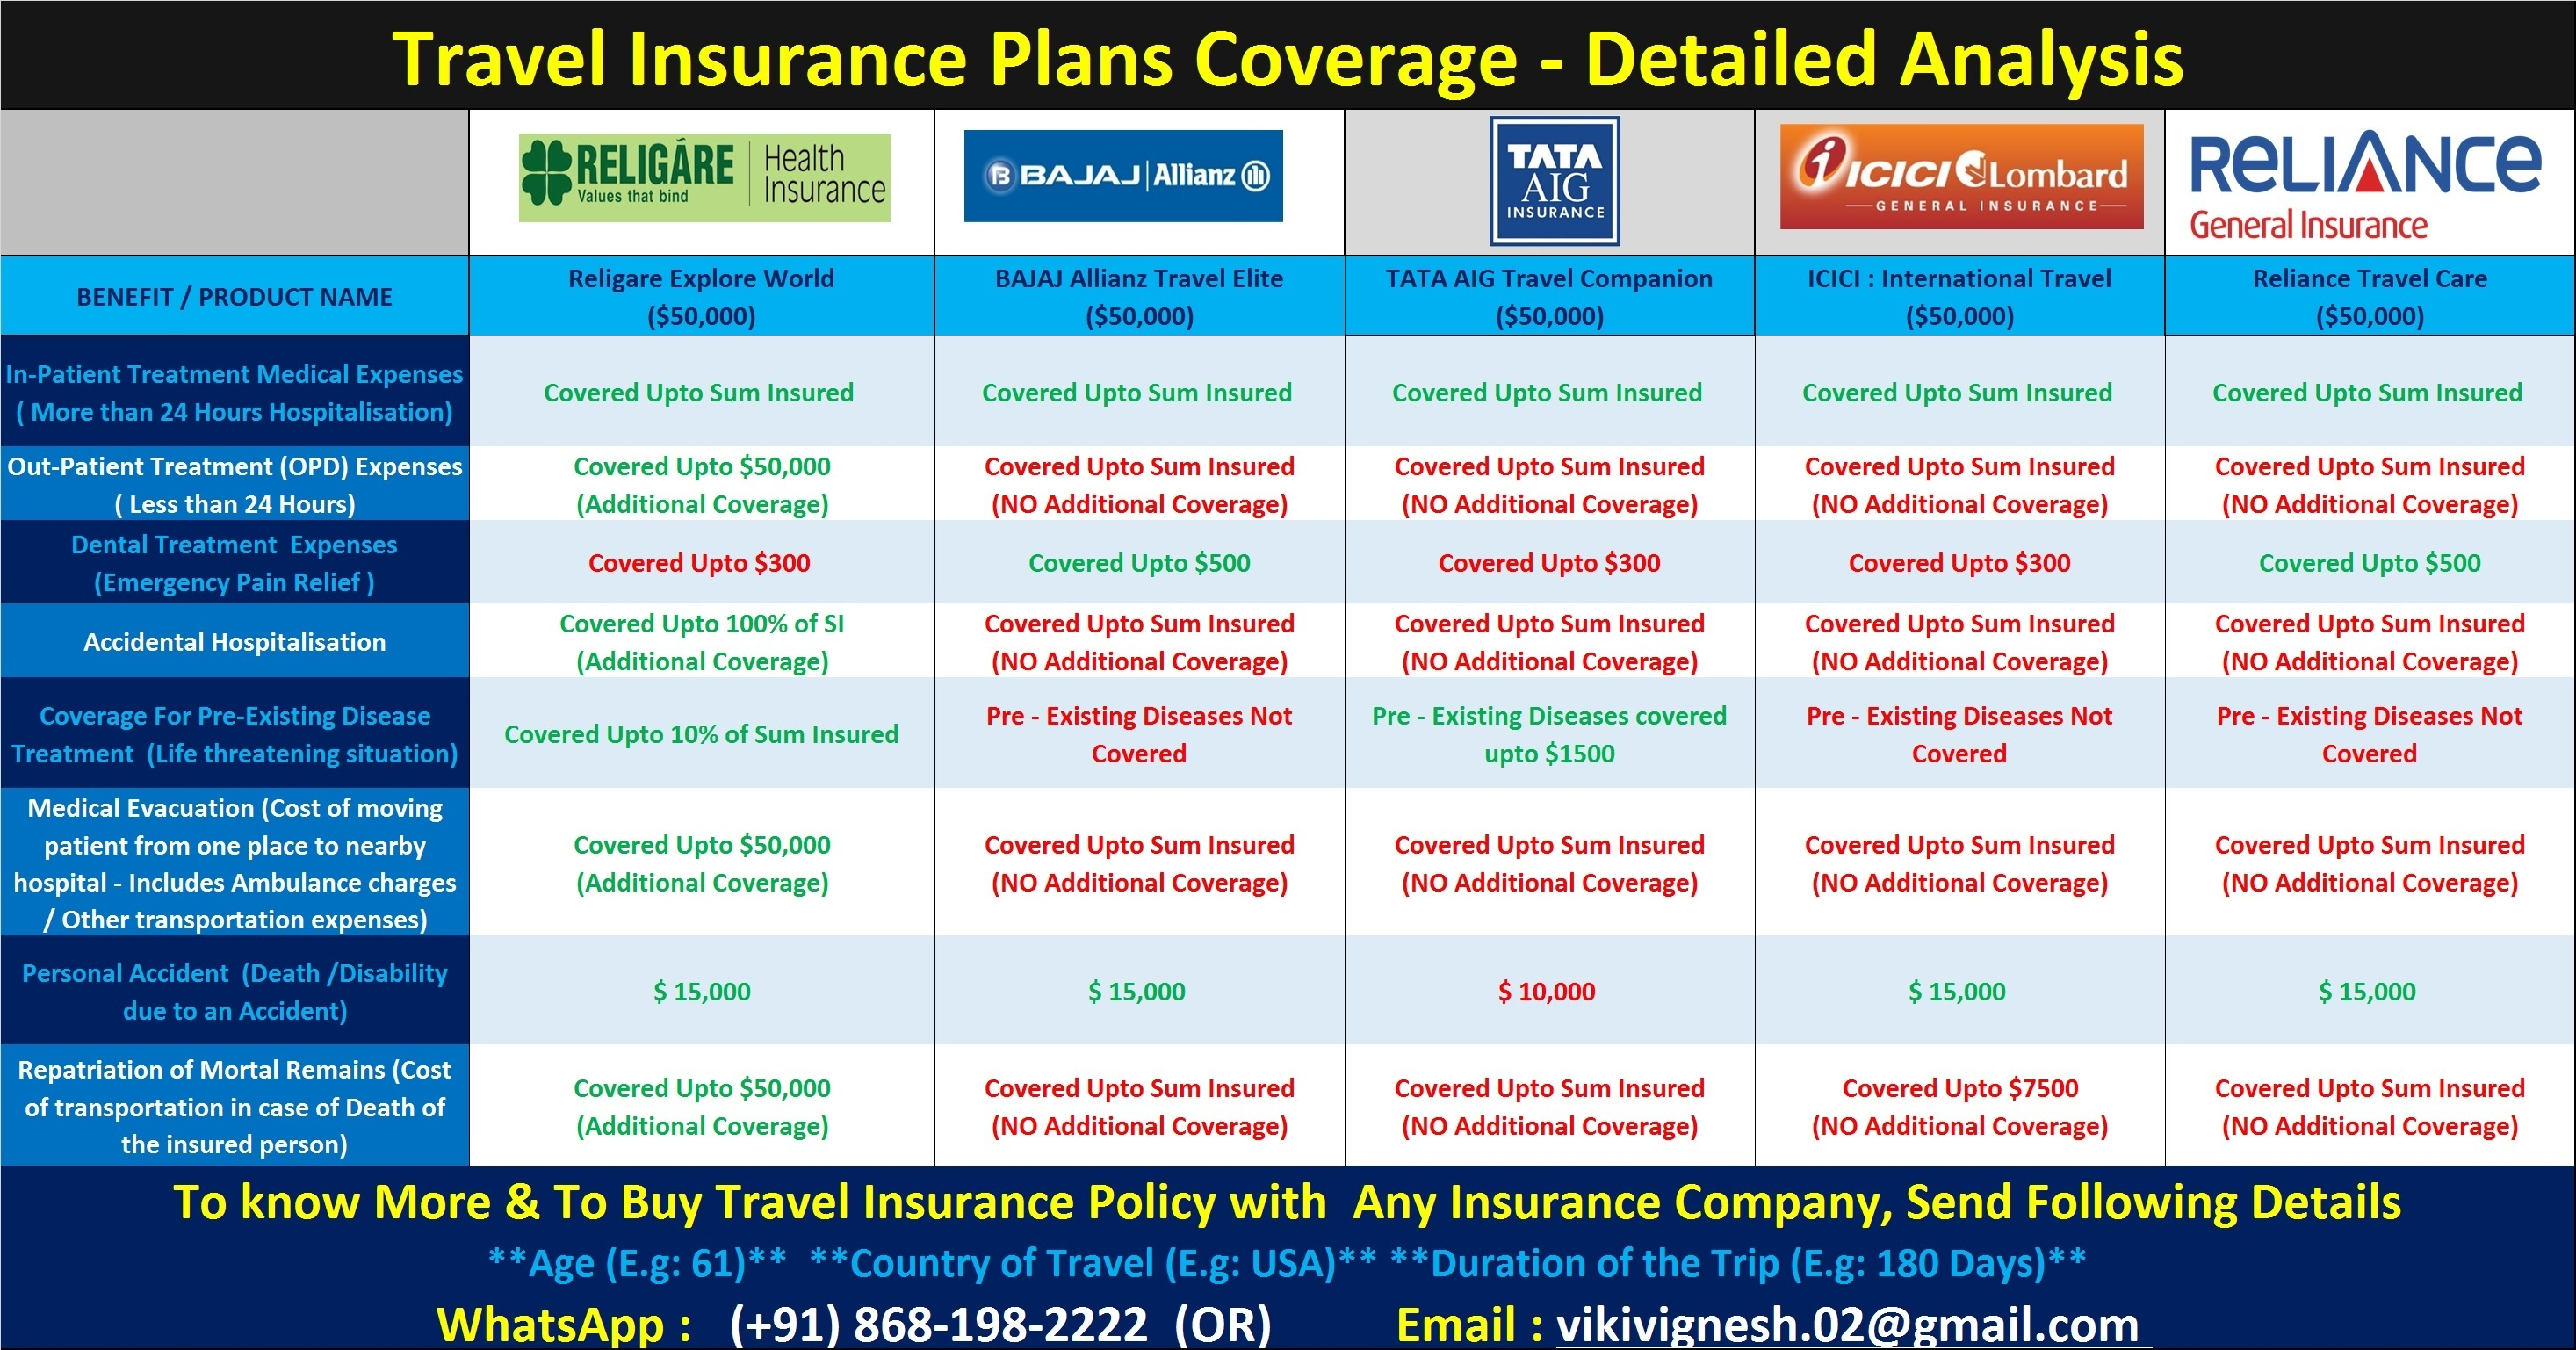 Does The Travel Health Insurance Taken In India Help In An Emergency